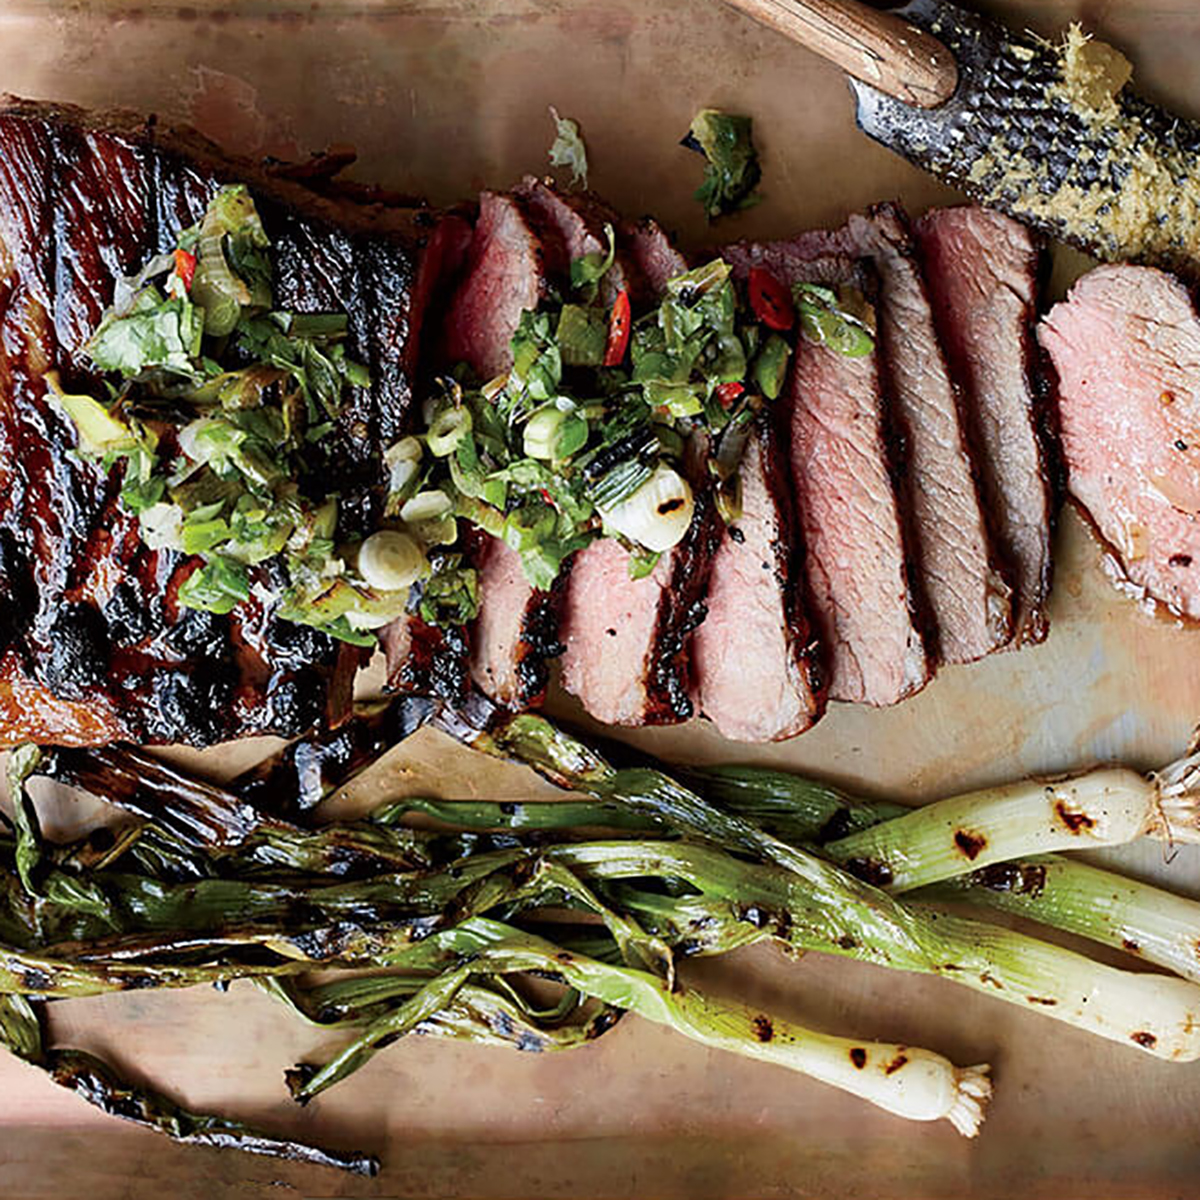 Seaside-Market-Tri-Tip-Product-1.jpg